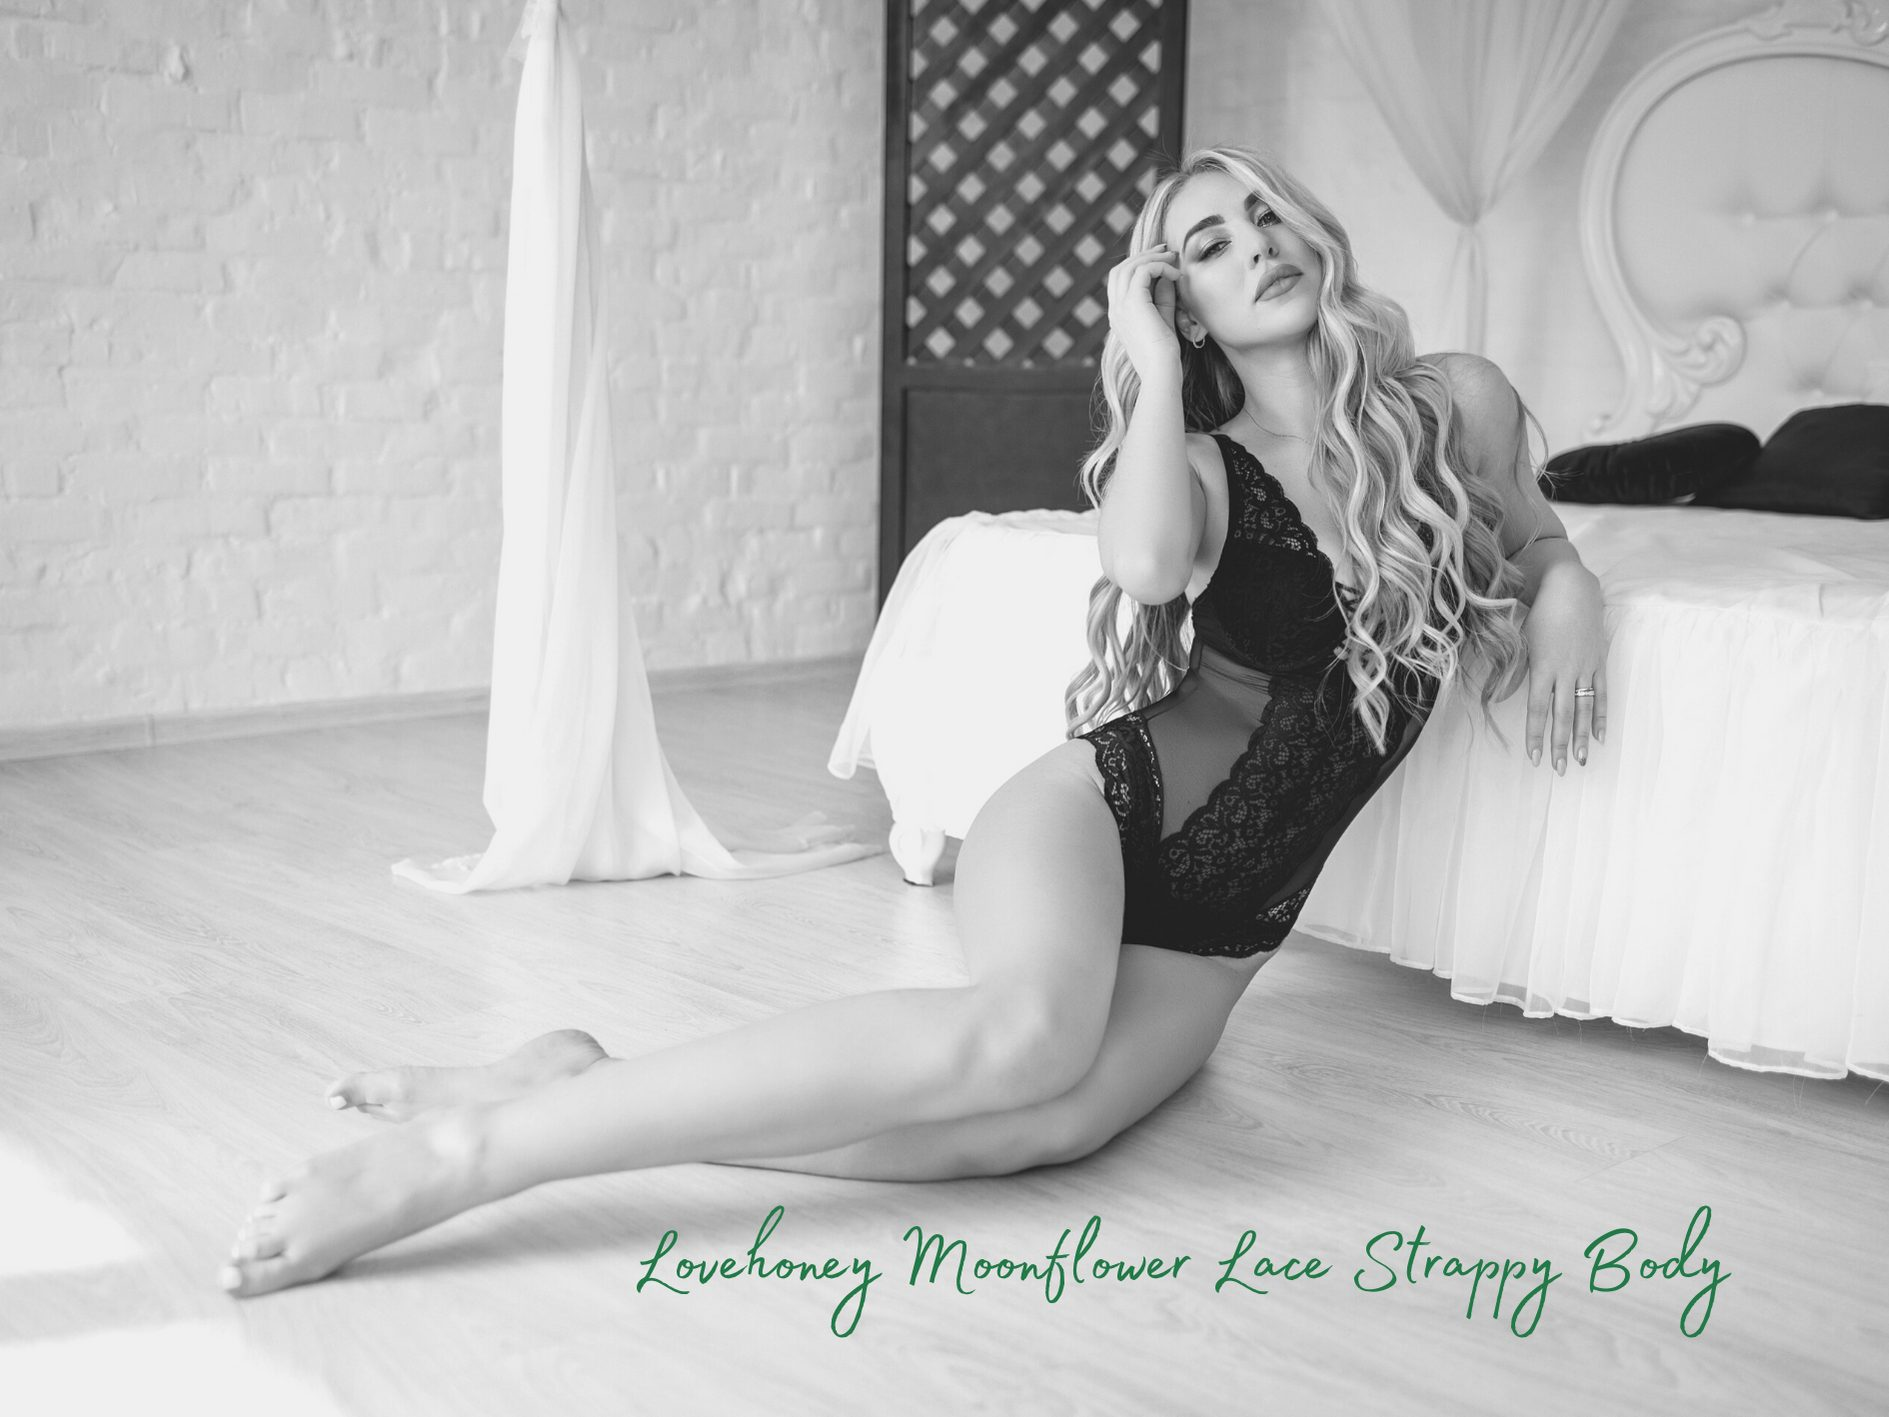 [Lingerie Review] Lovehoney Moonflower Emerald Green Lace Strappy Body